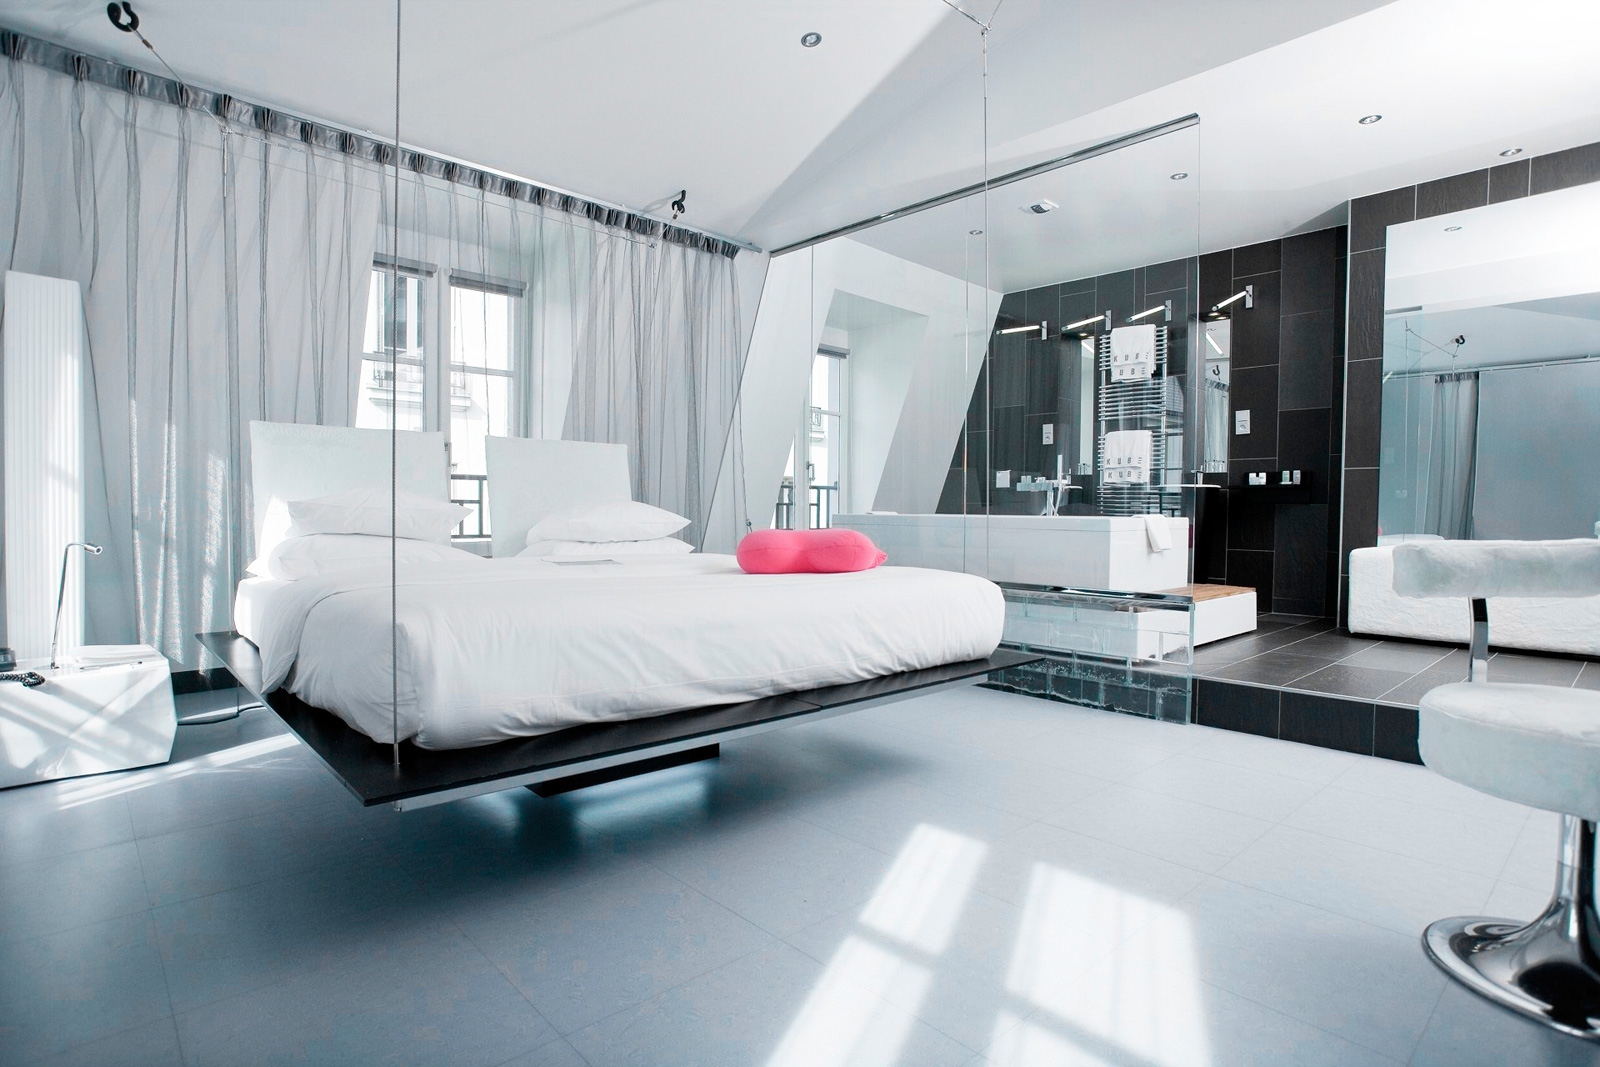 Kube hotel murano hotels resorts ideasgn for Hotel contemporain paris